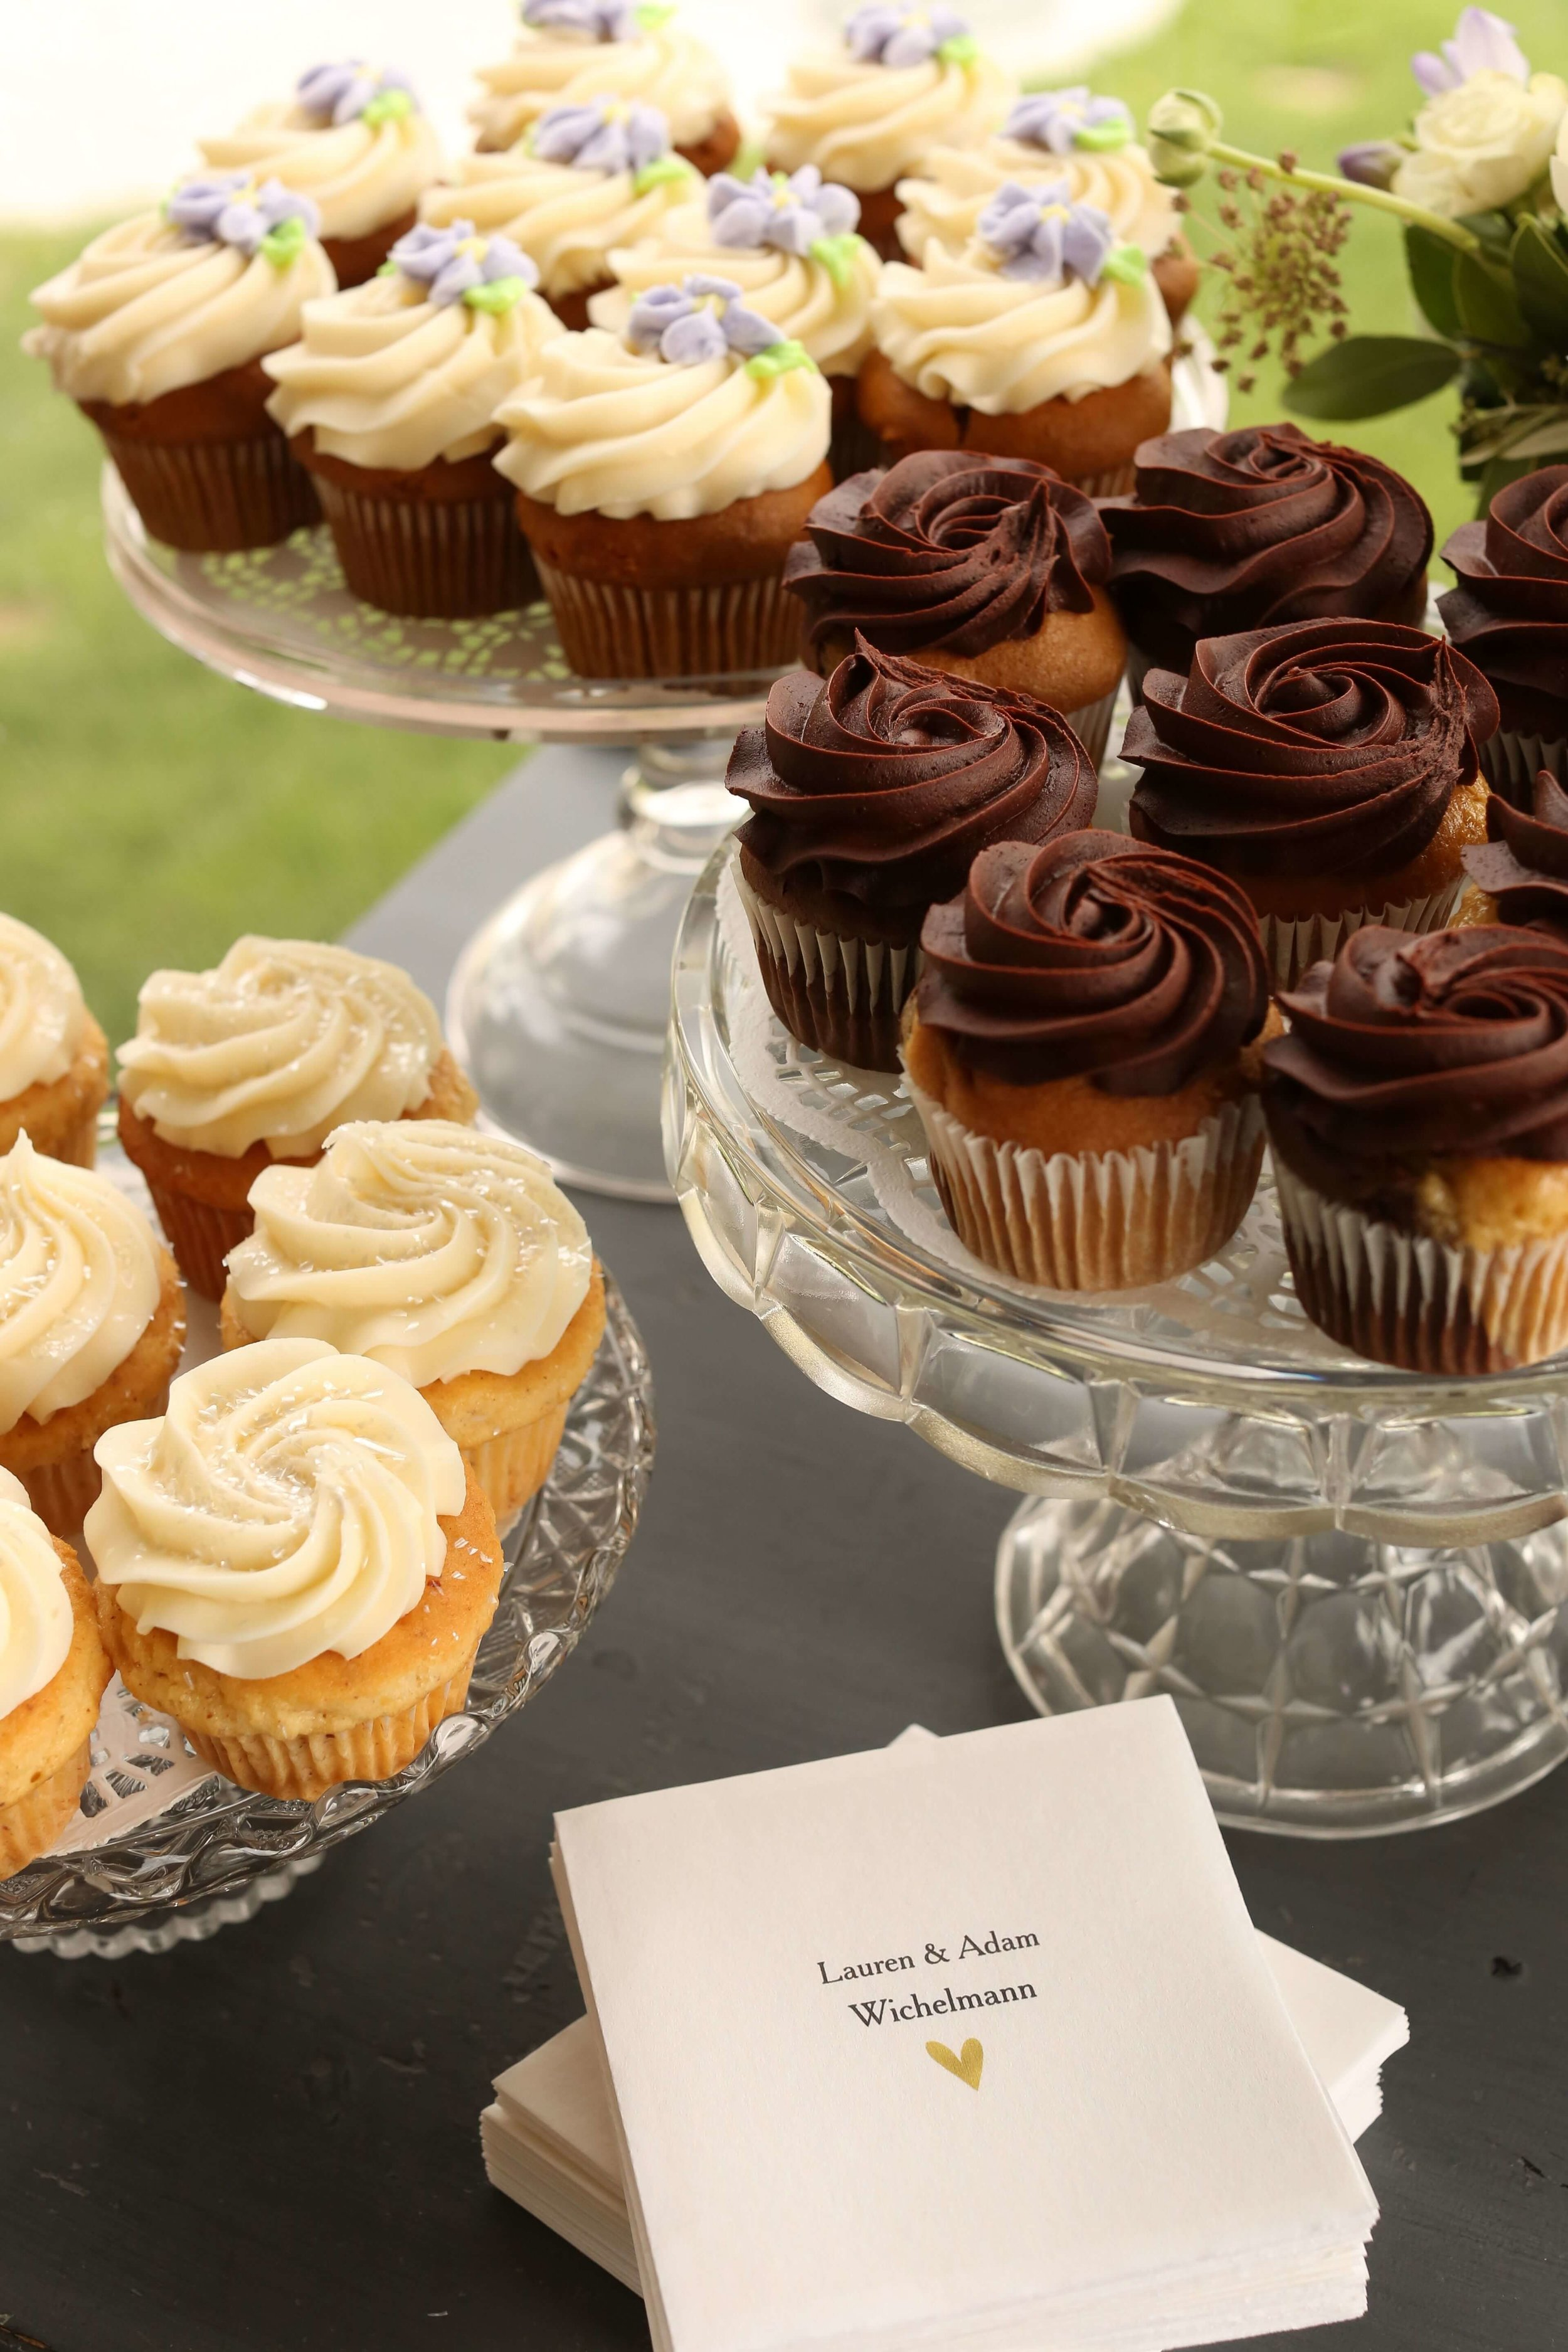 cupcakes and glass stands | Lauren + Adam - SIxpence Events and Planning - Legacy Hill Farm - Unique Touch Photography.jpg